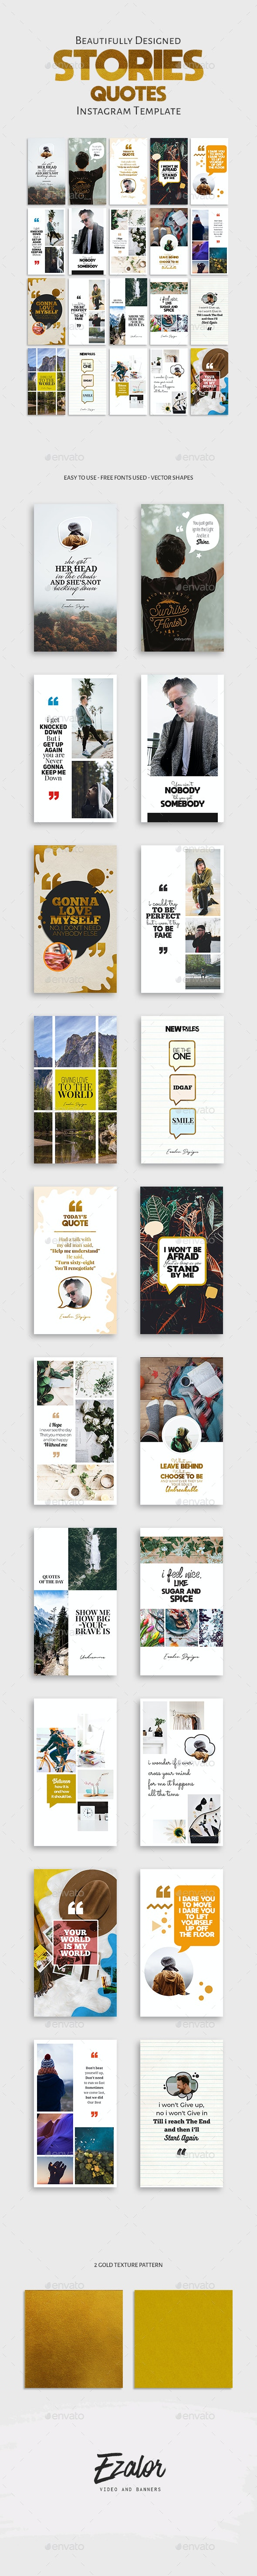 Stories Quotes Template - Social Media Web Elements